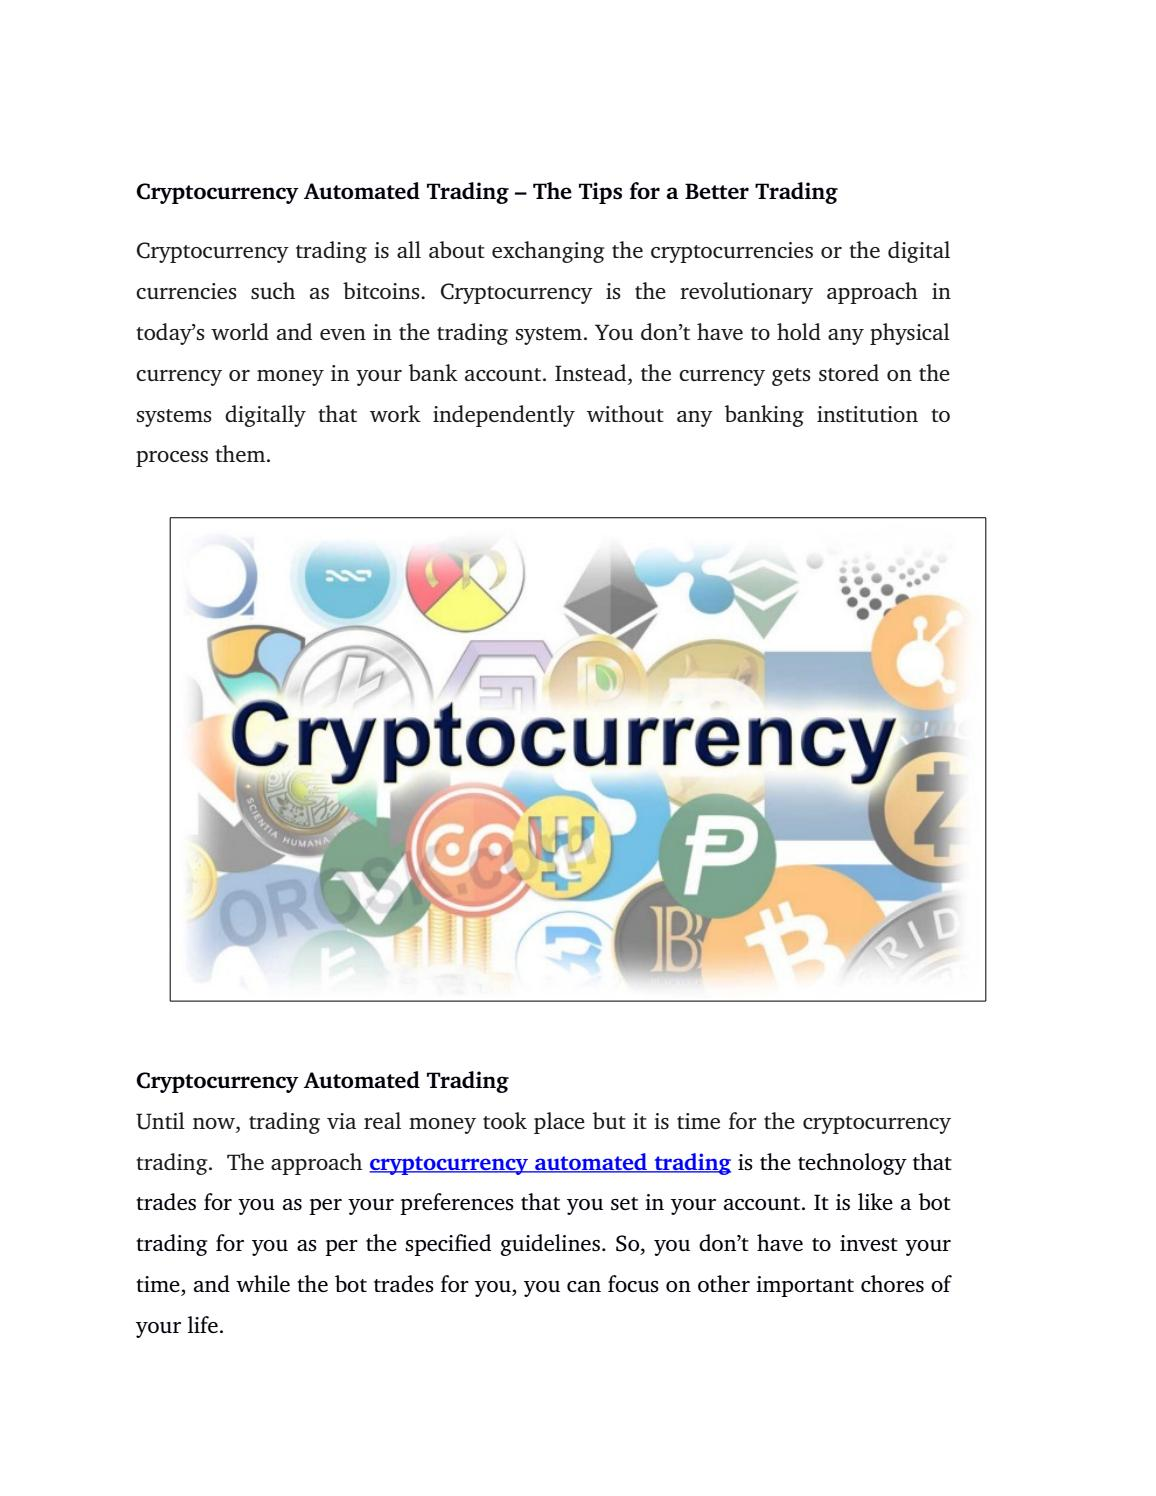 How trading cryptocurrency works